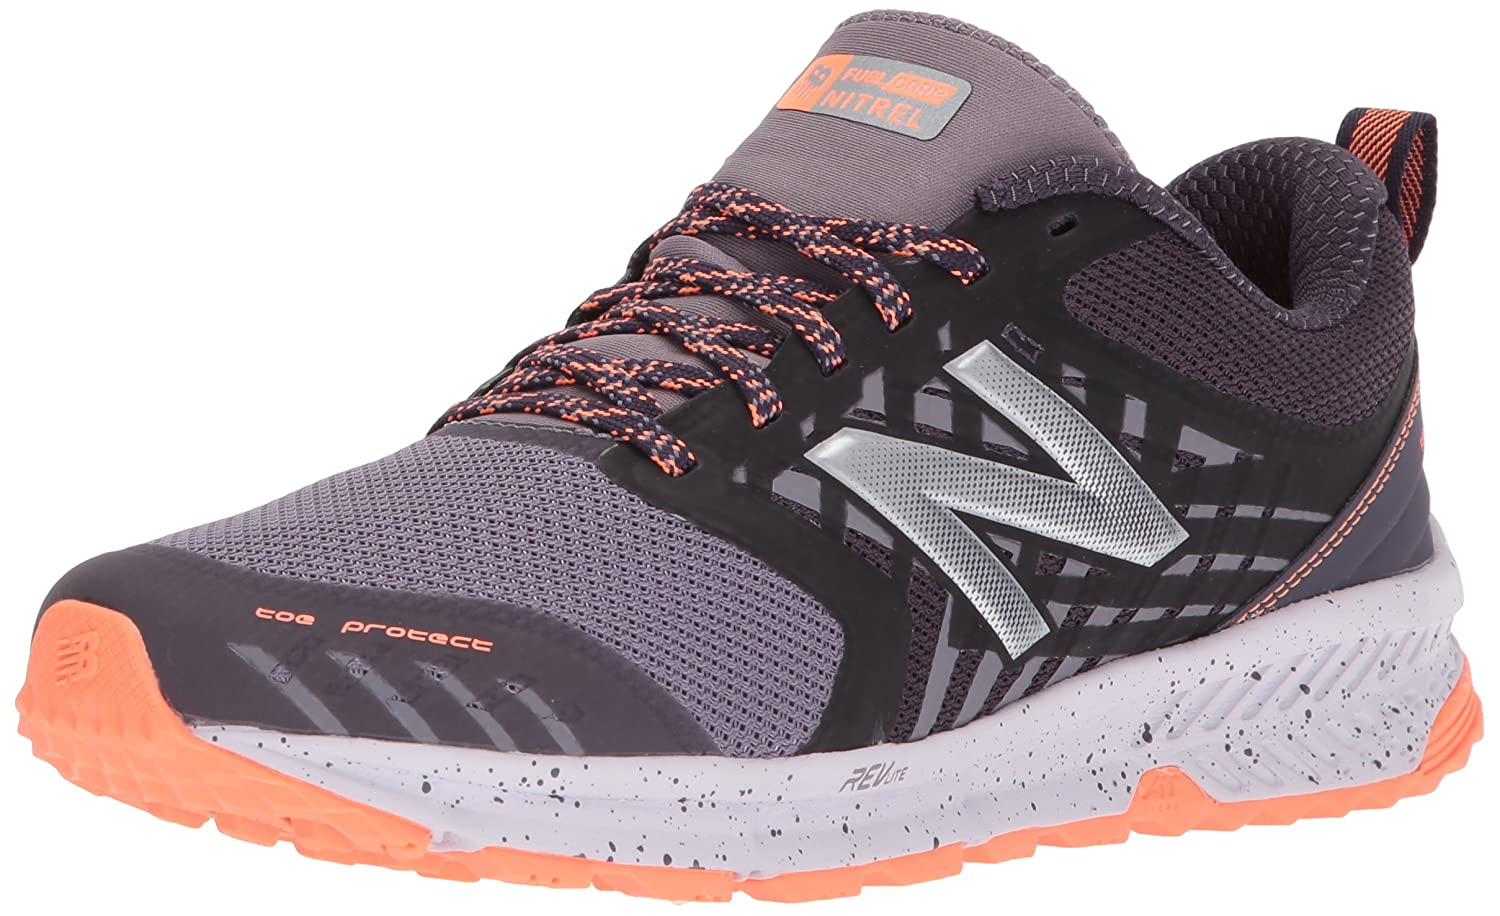 New Balance Women's Nitrel v1 FuelCore Trail Running Shoe B01N4HPRM1 11 D US|Elderberry